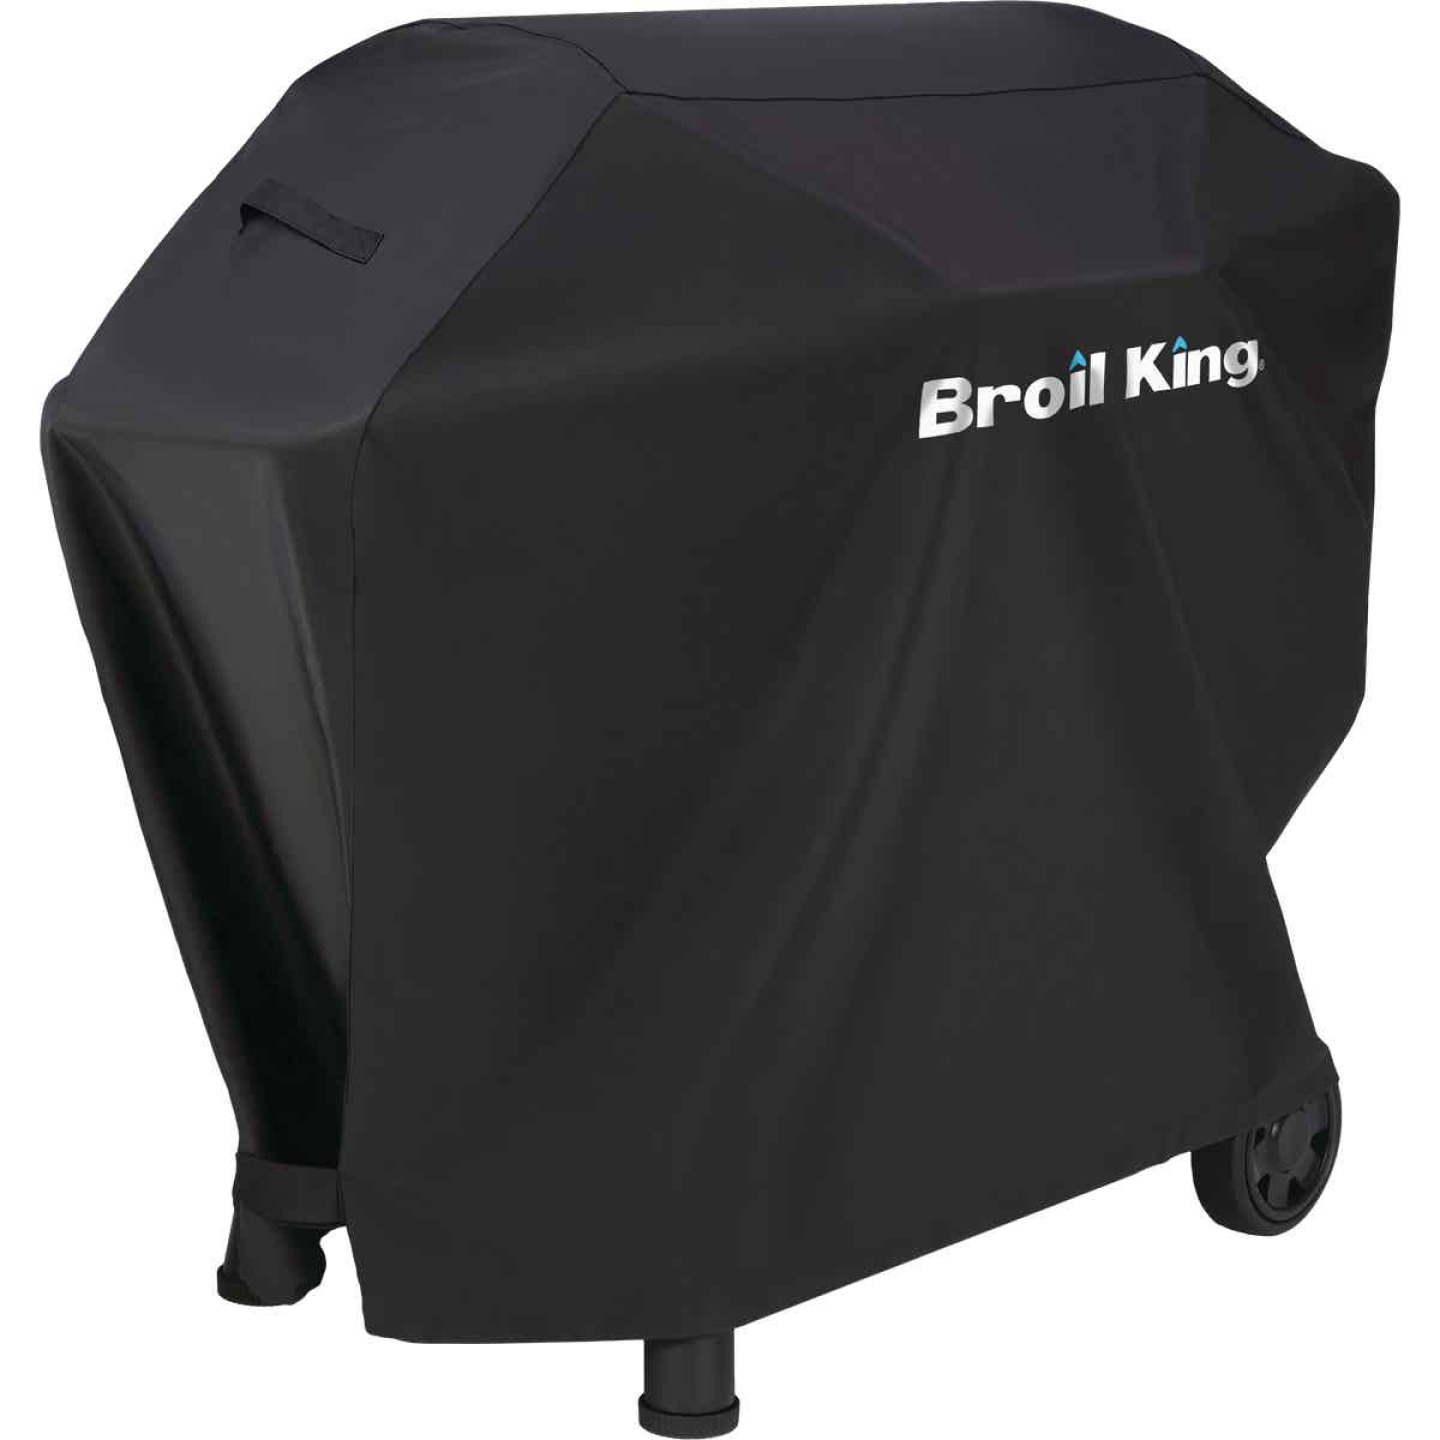 Broil King Baron Pellet 400 42 In. Black Grill Cover Image 1